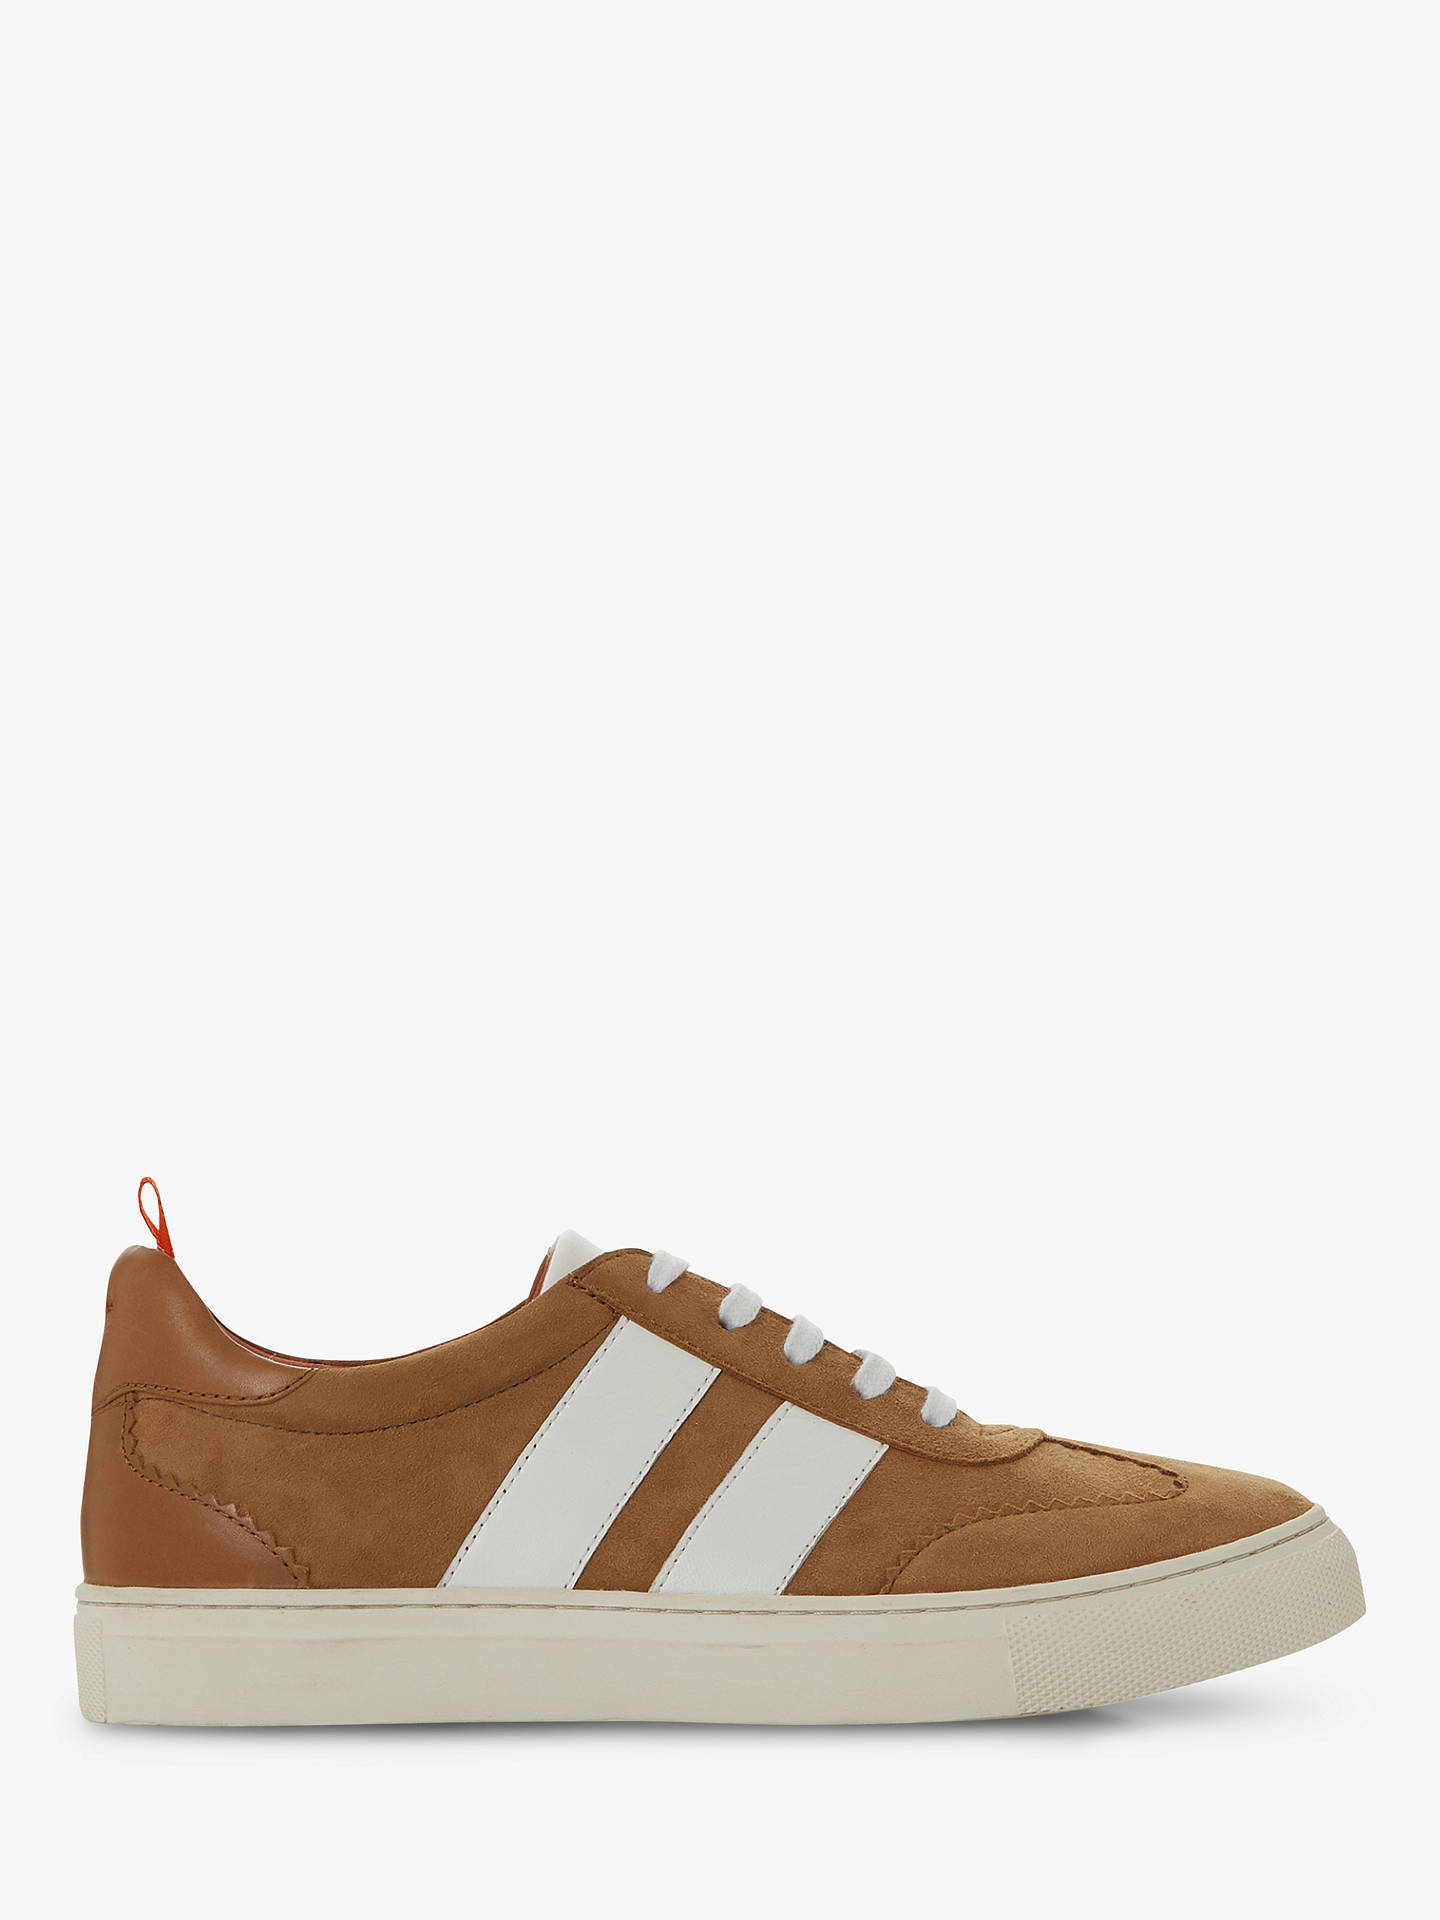 Bertie Striped Leather Detail Trainers, Camel by Bertie